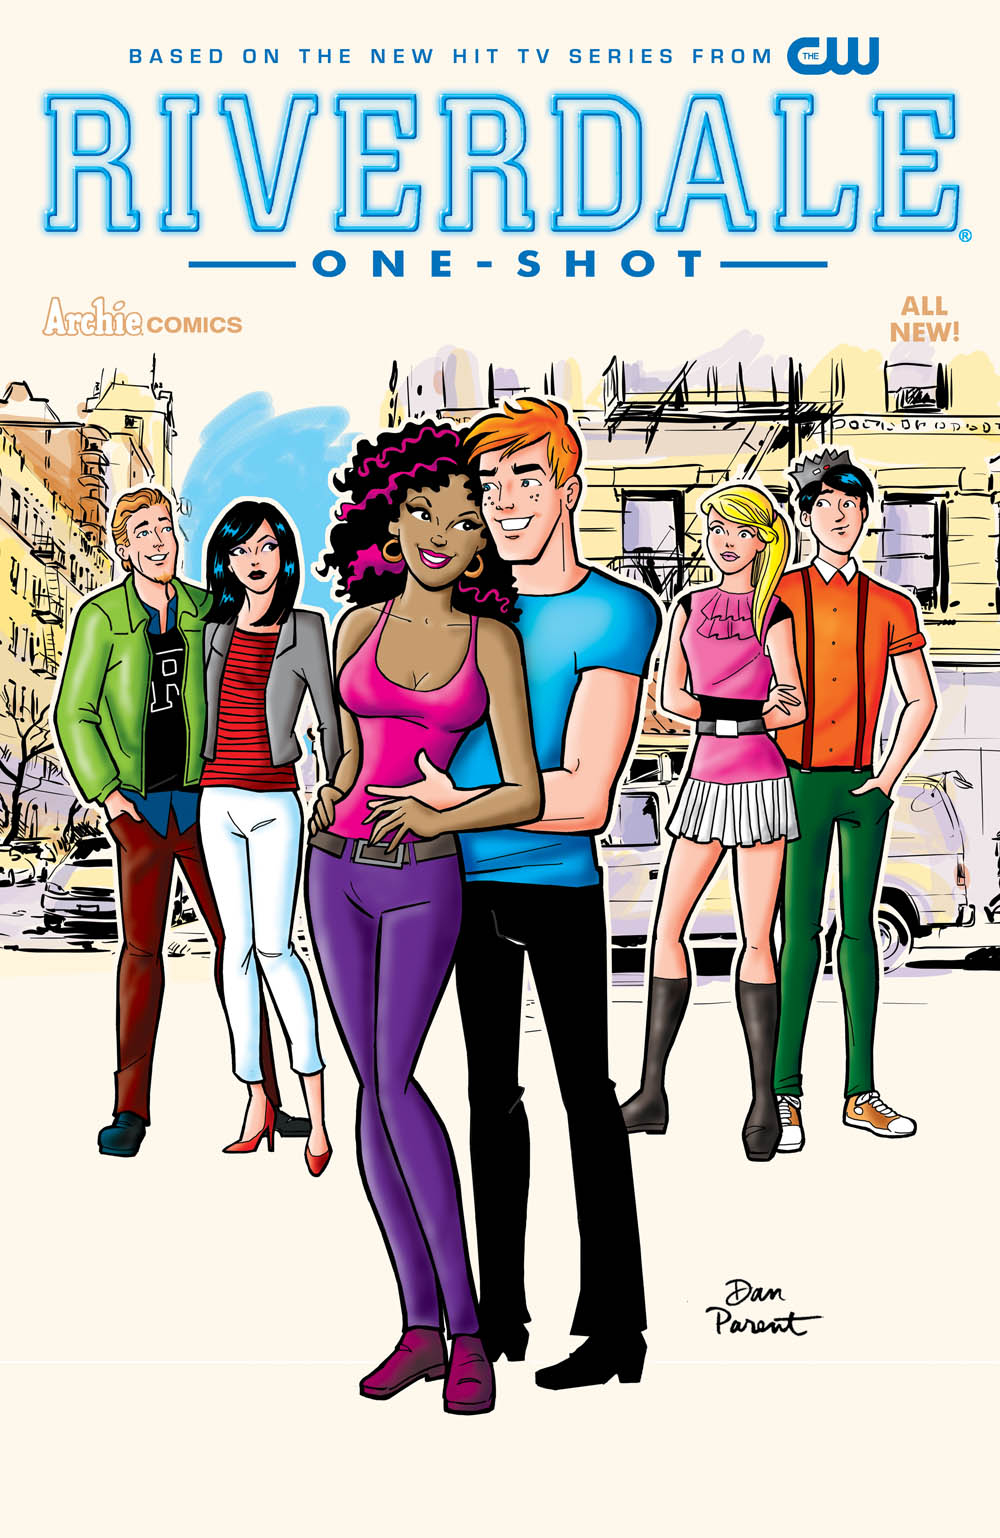 Riverdale one-shot cover by Dan Parent